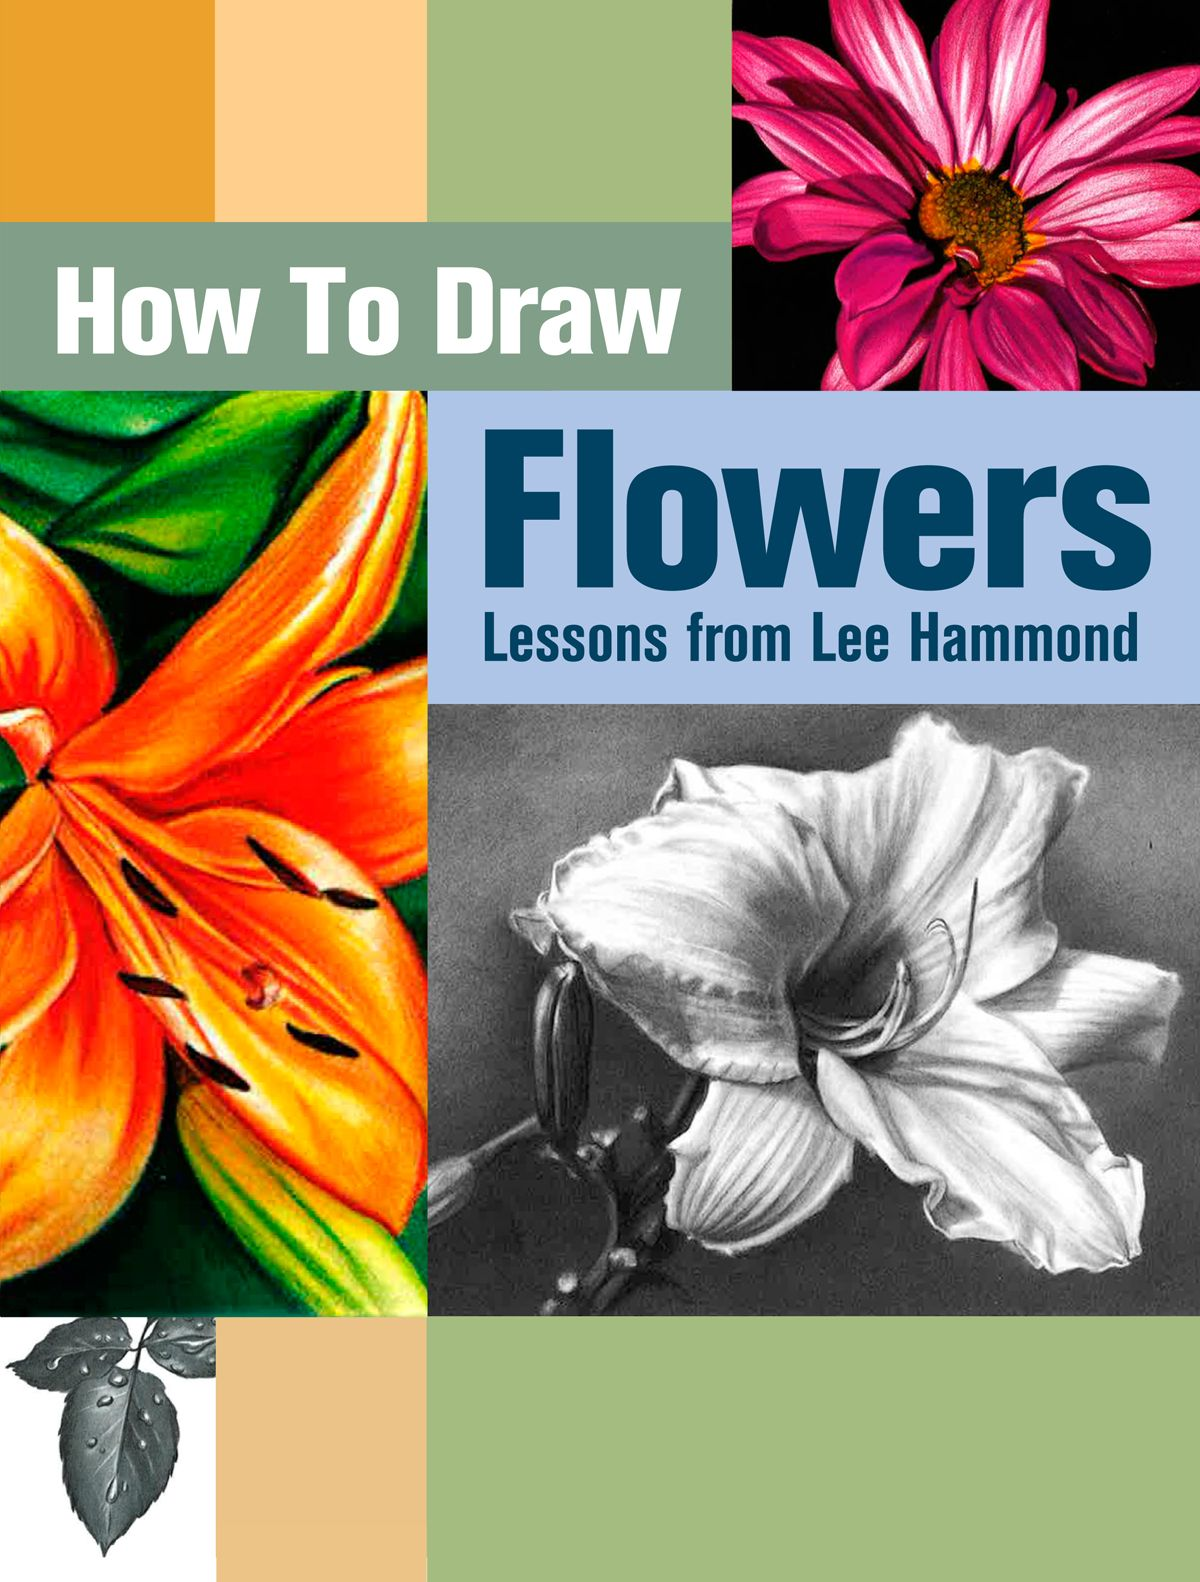 How to Draw Flowers Free Flower Drawing Guide Draw flowers